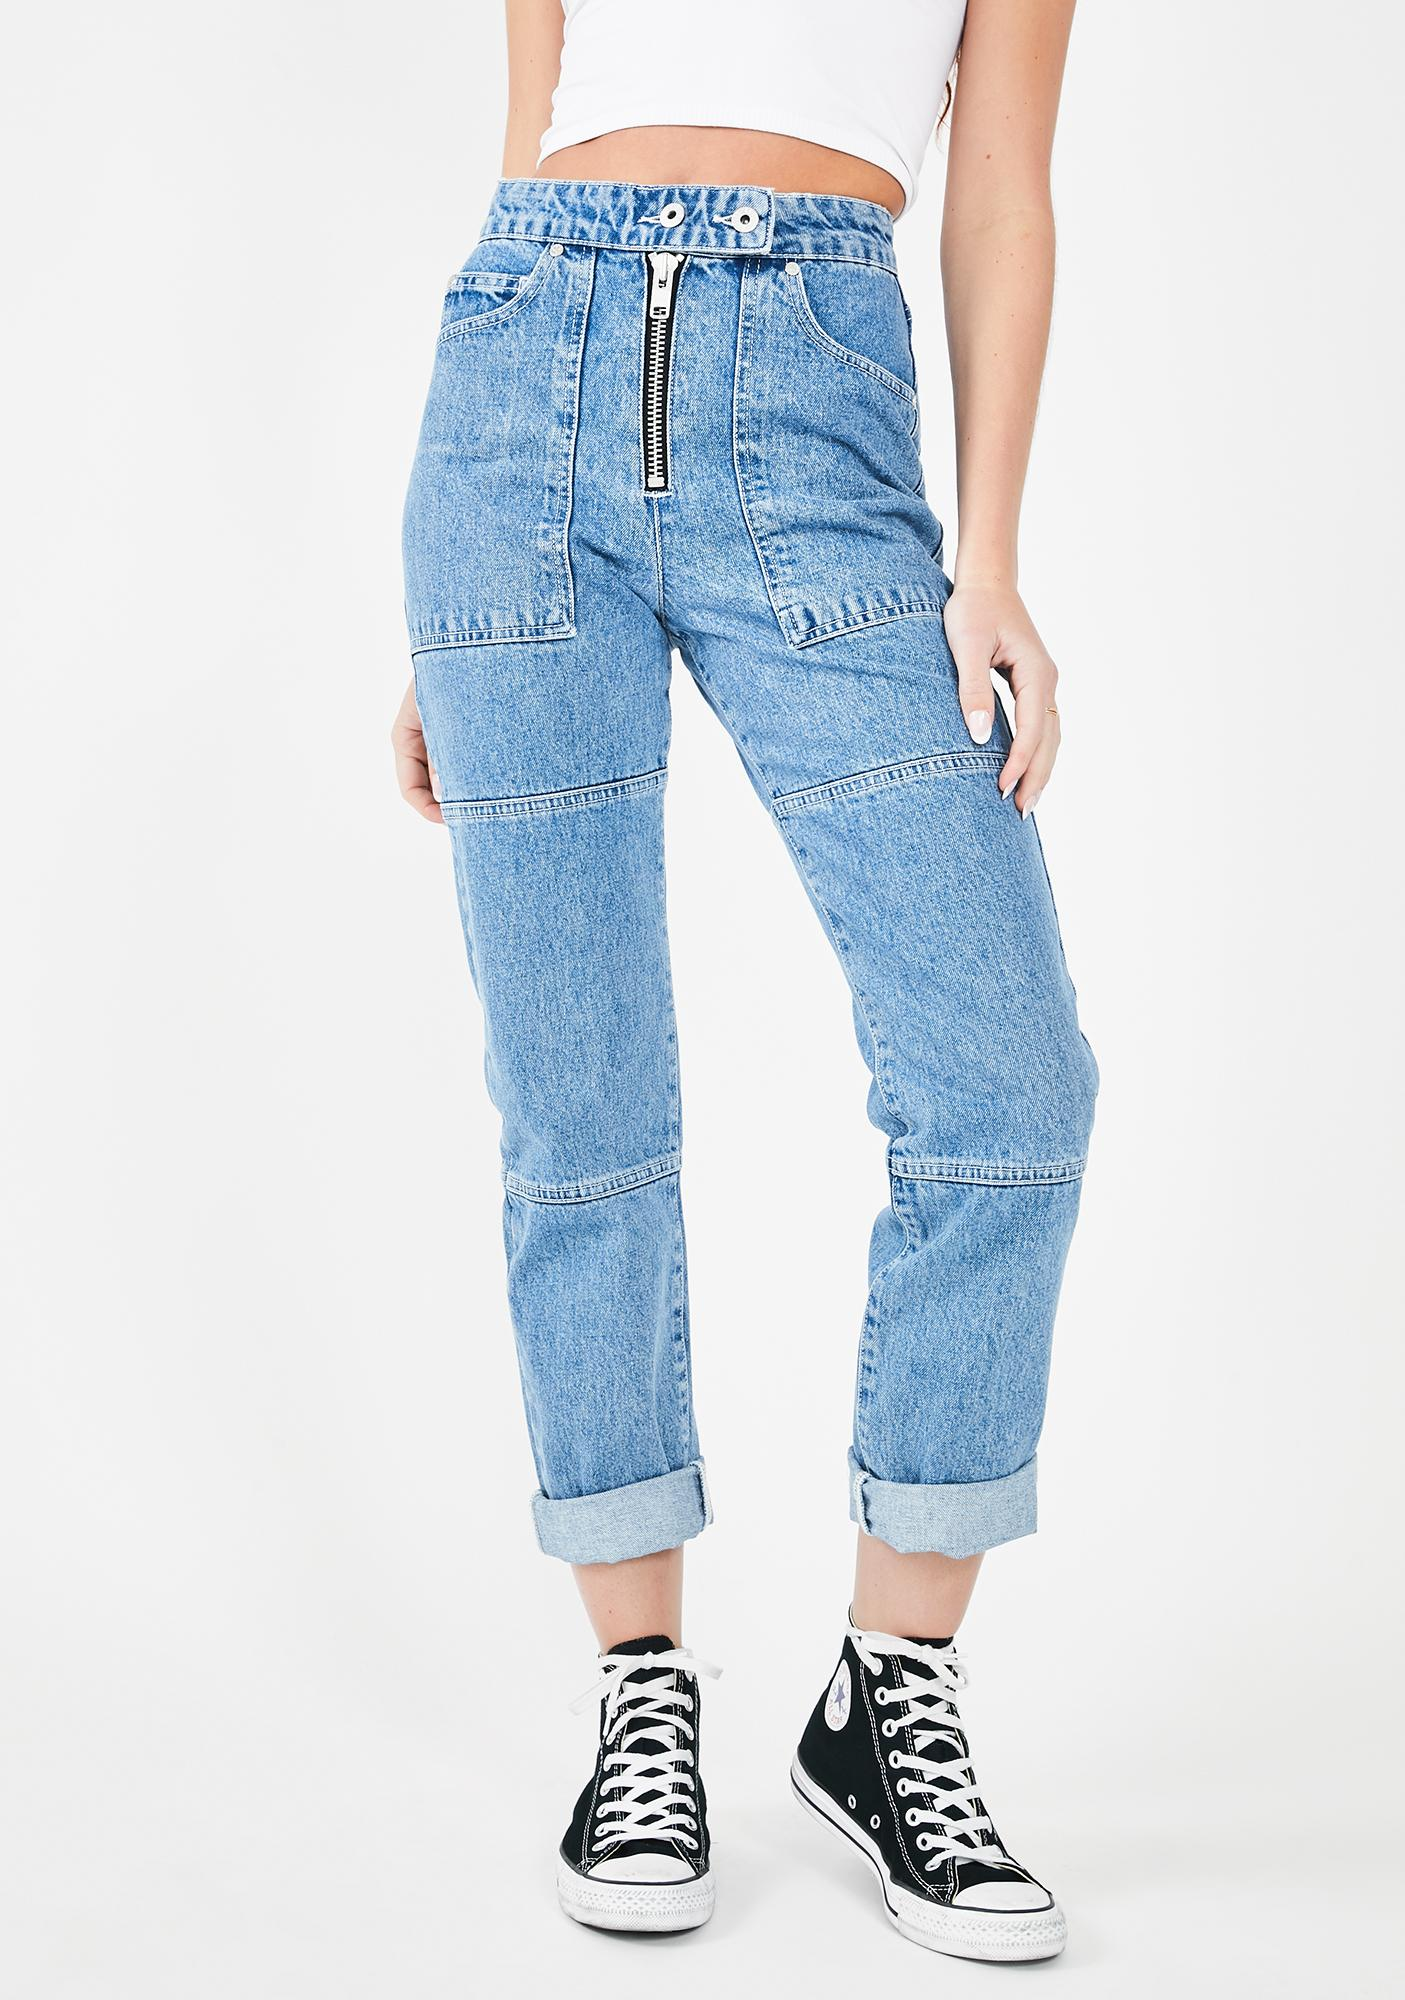 The Ragged Priest Light Blue Pride Jeans